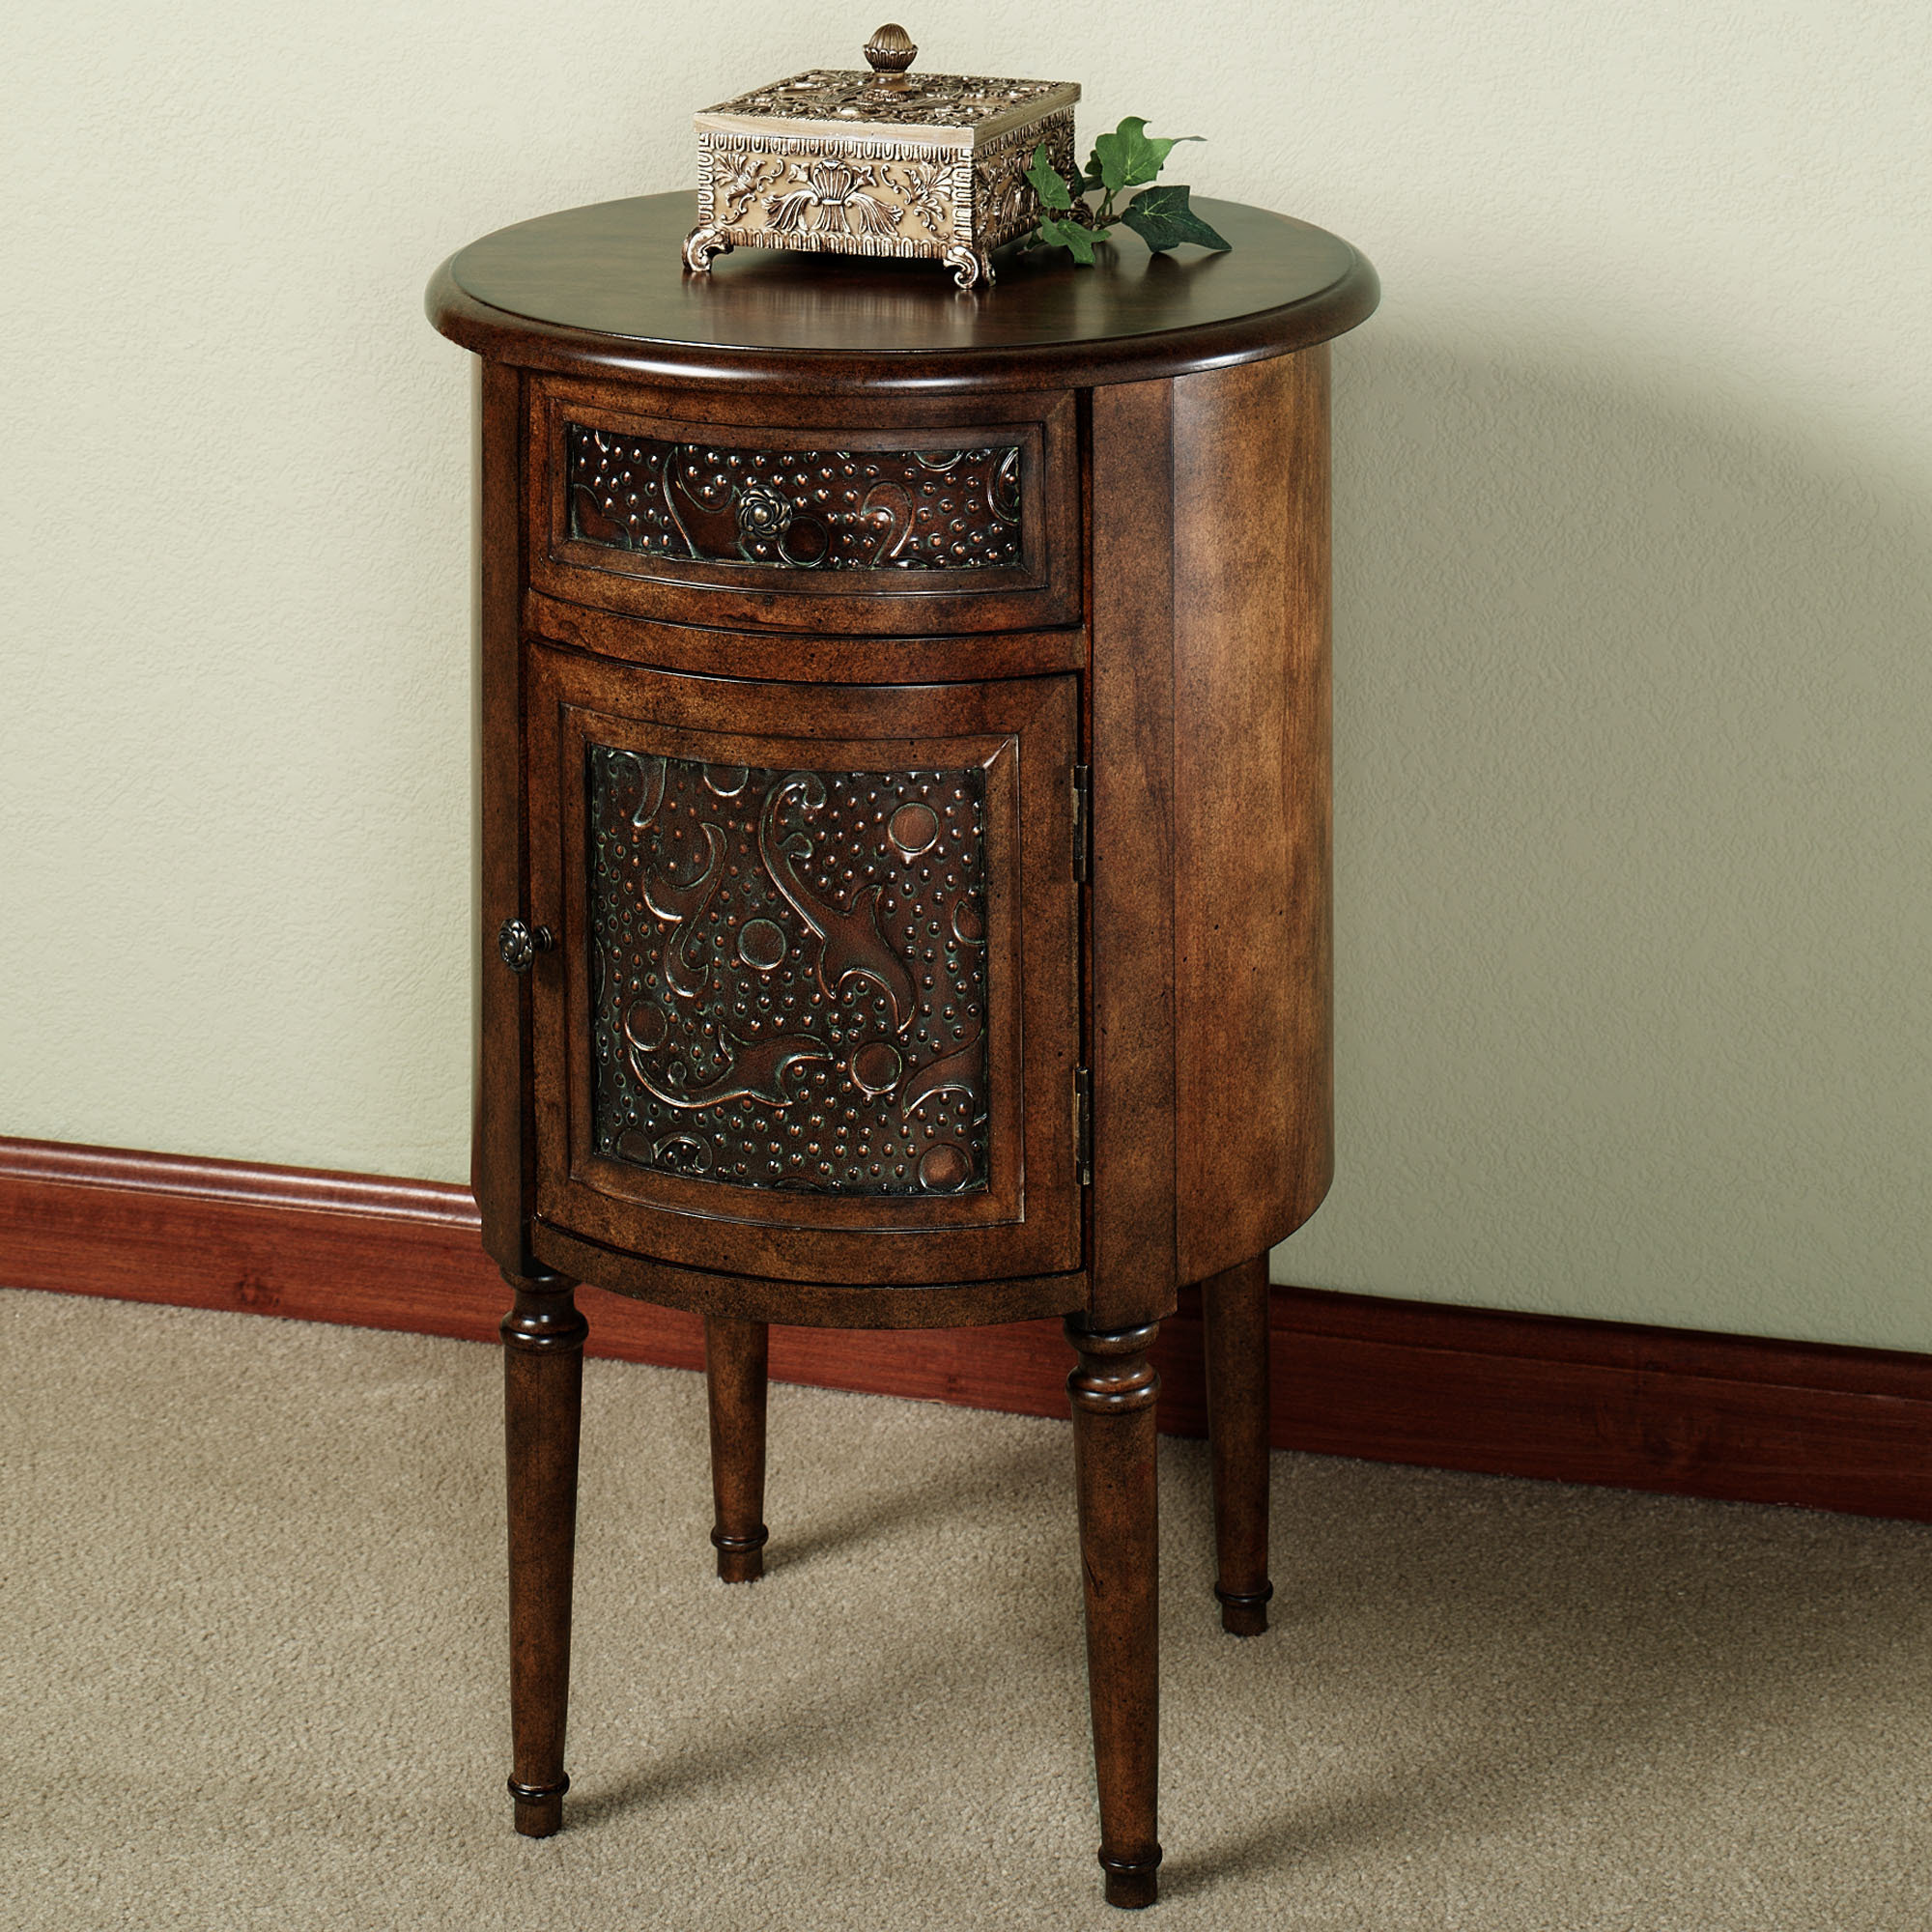 uttermost furniture the fantastic awesome skinny end table with accent tables for bedroom house decorations stylist design ideas beautiful narrow innovative drawer made out